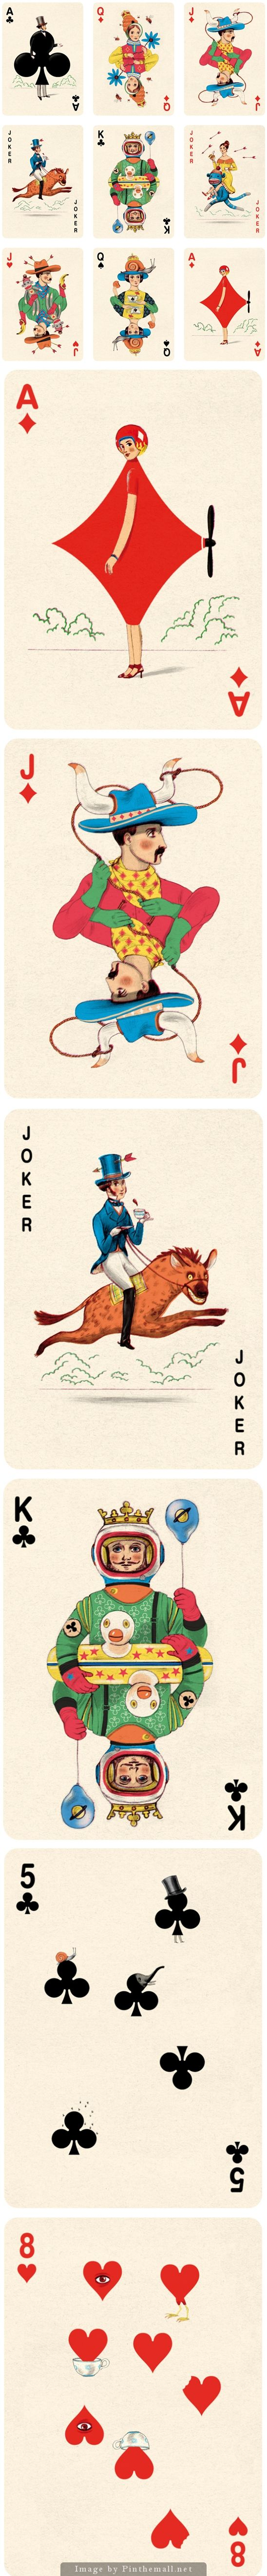 Playing Cards Illustrations by Jonathan Burton - Always wanted to make deck of playing cards, this has just convinced me :-)